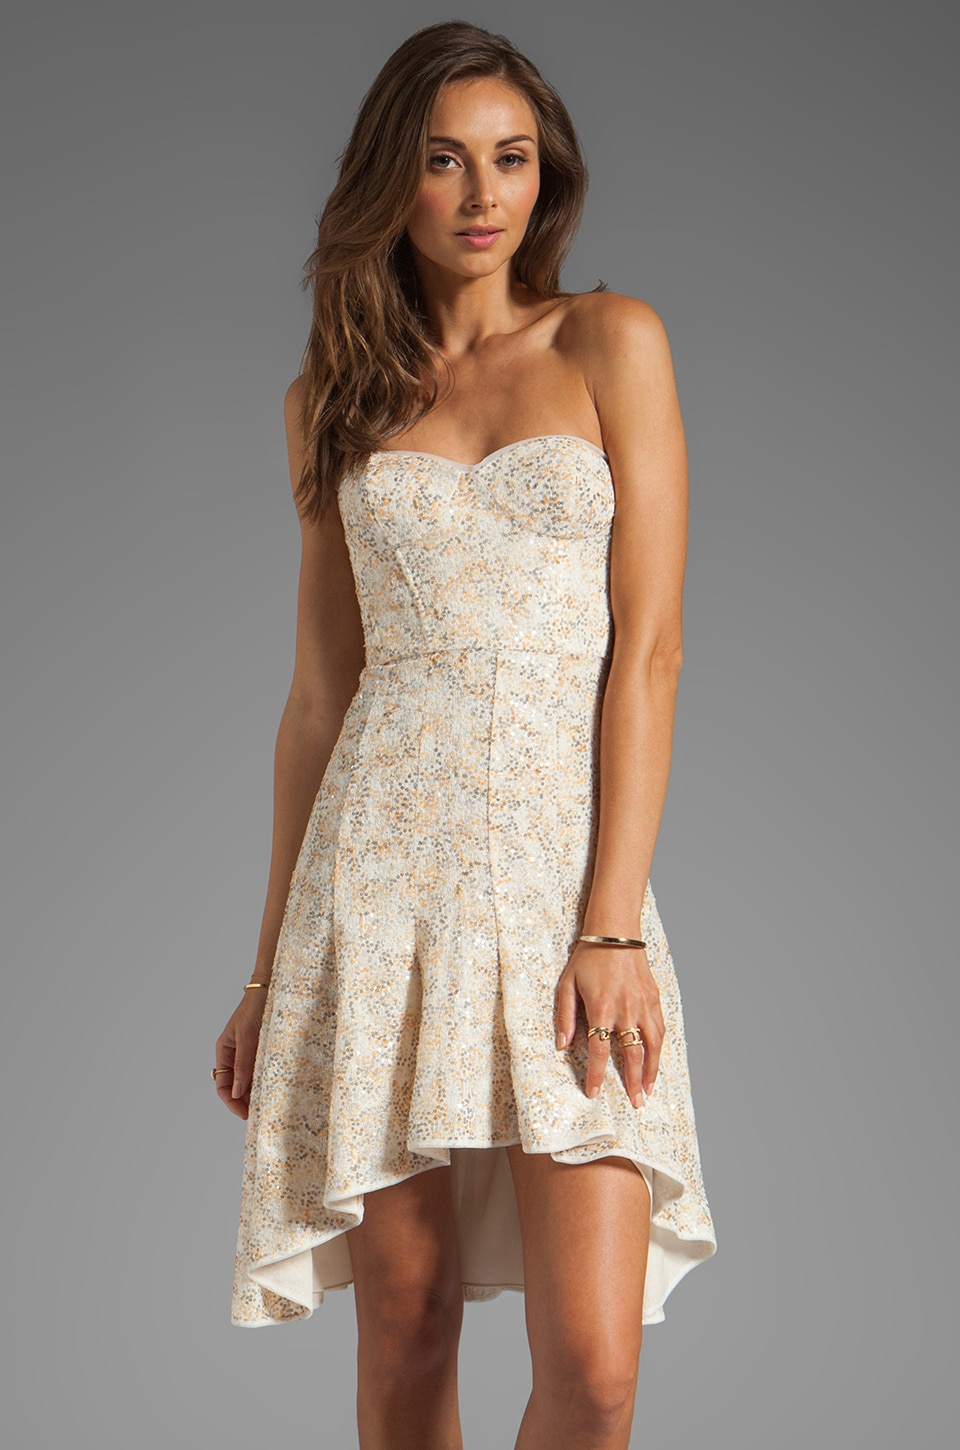 BCBGMAXAZRIA Strapless Dress in White Combo